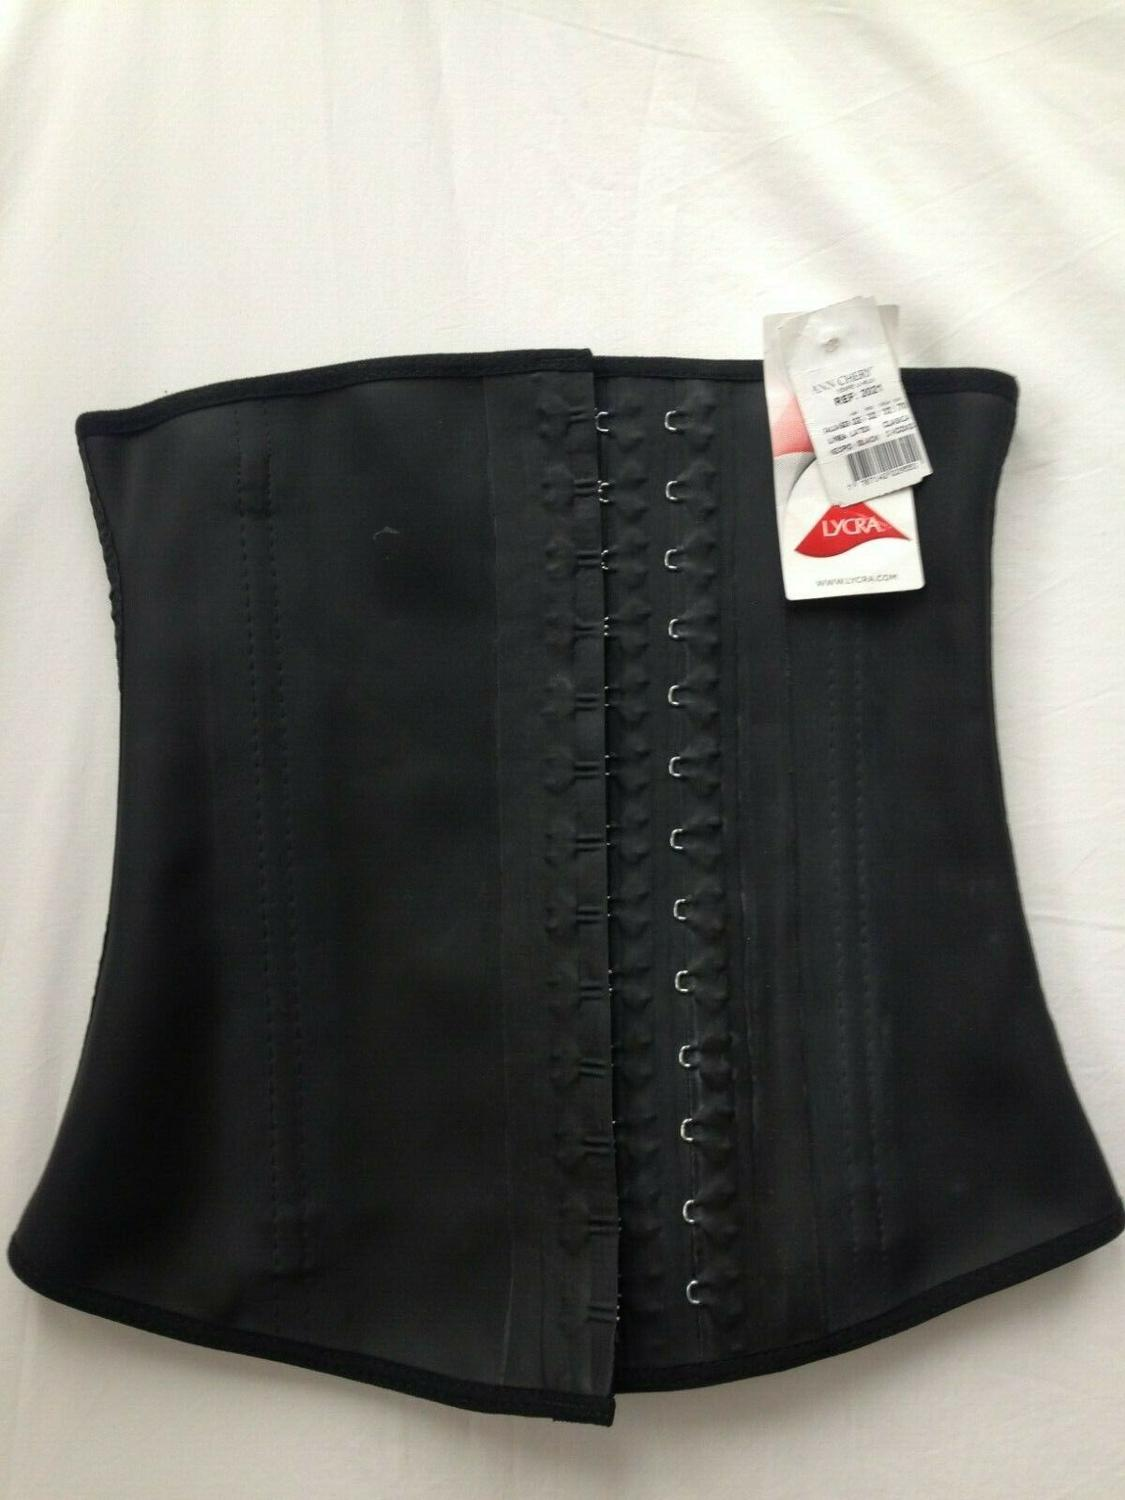 2019 chaud!! Gros latex taille formation corsets ann chery taille cincher chaud shaper taille formateur corset - 5